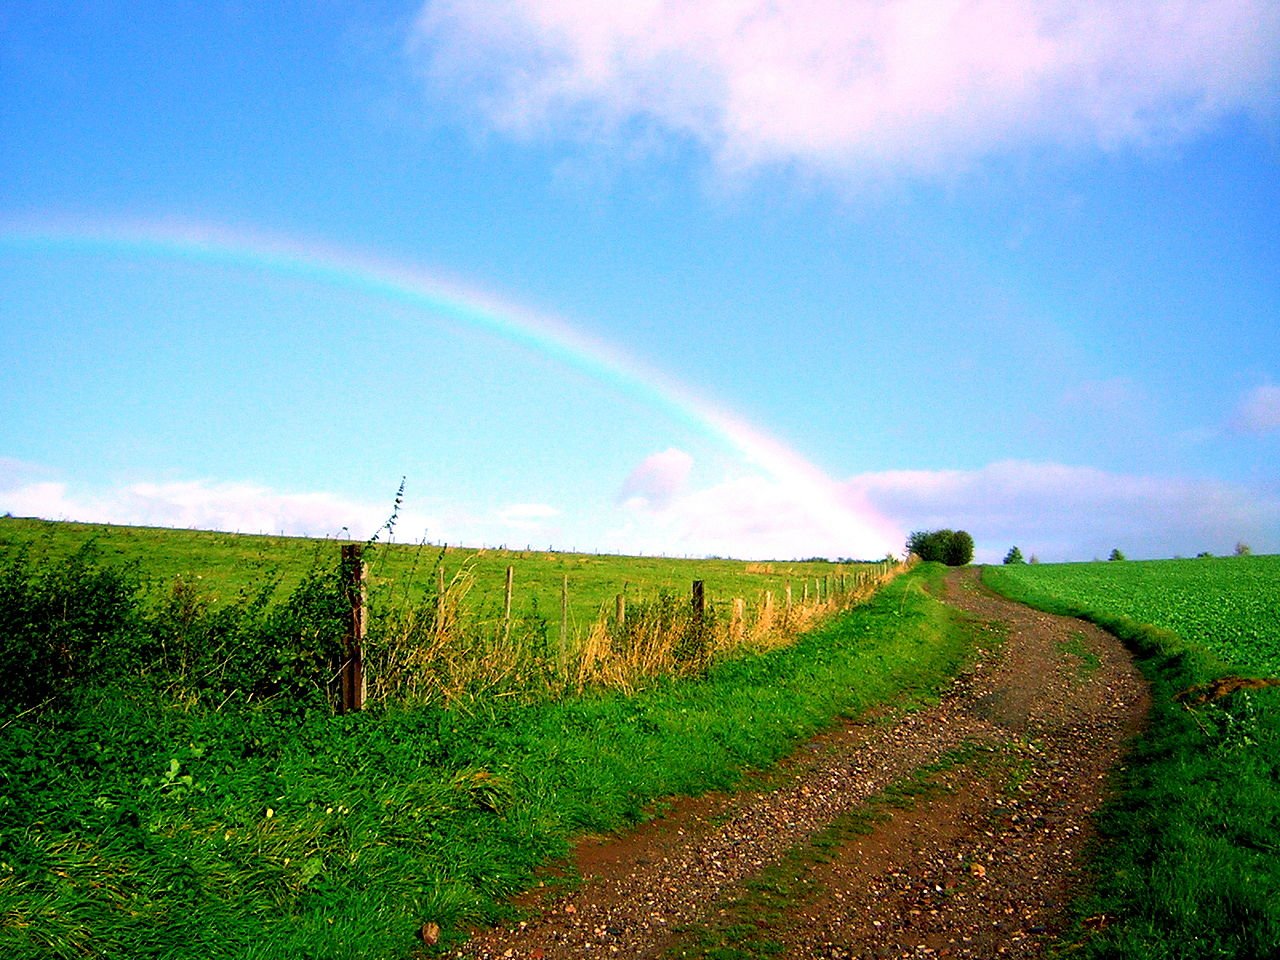 File:Landscape with rainbow on the road between Heimbach and Nideggen.jpg